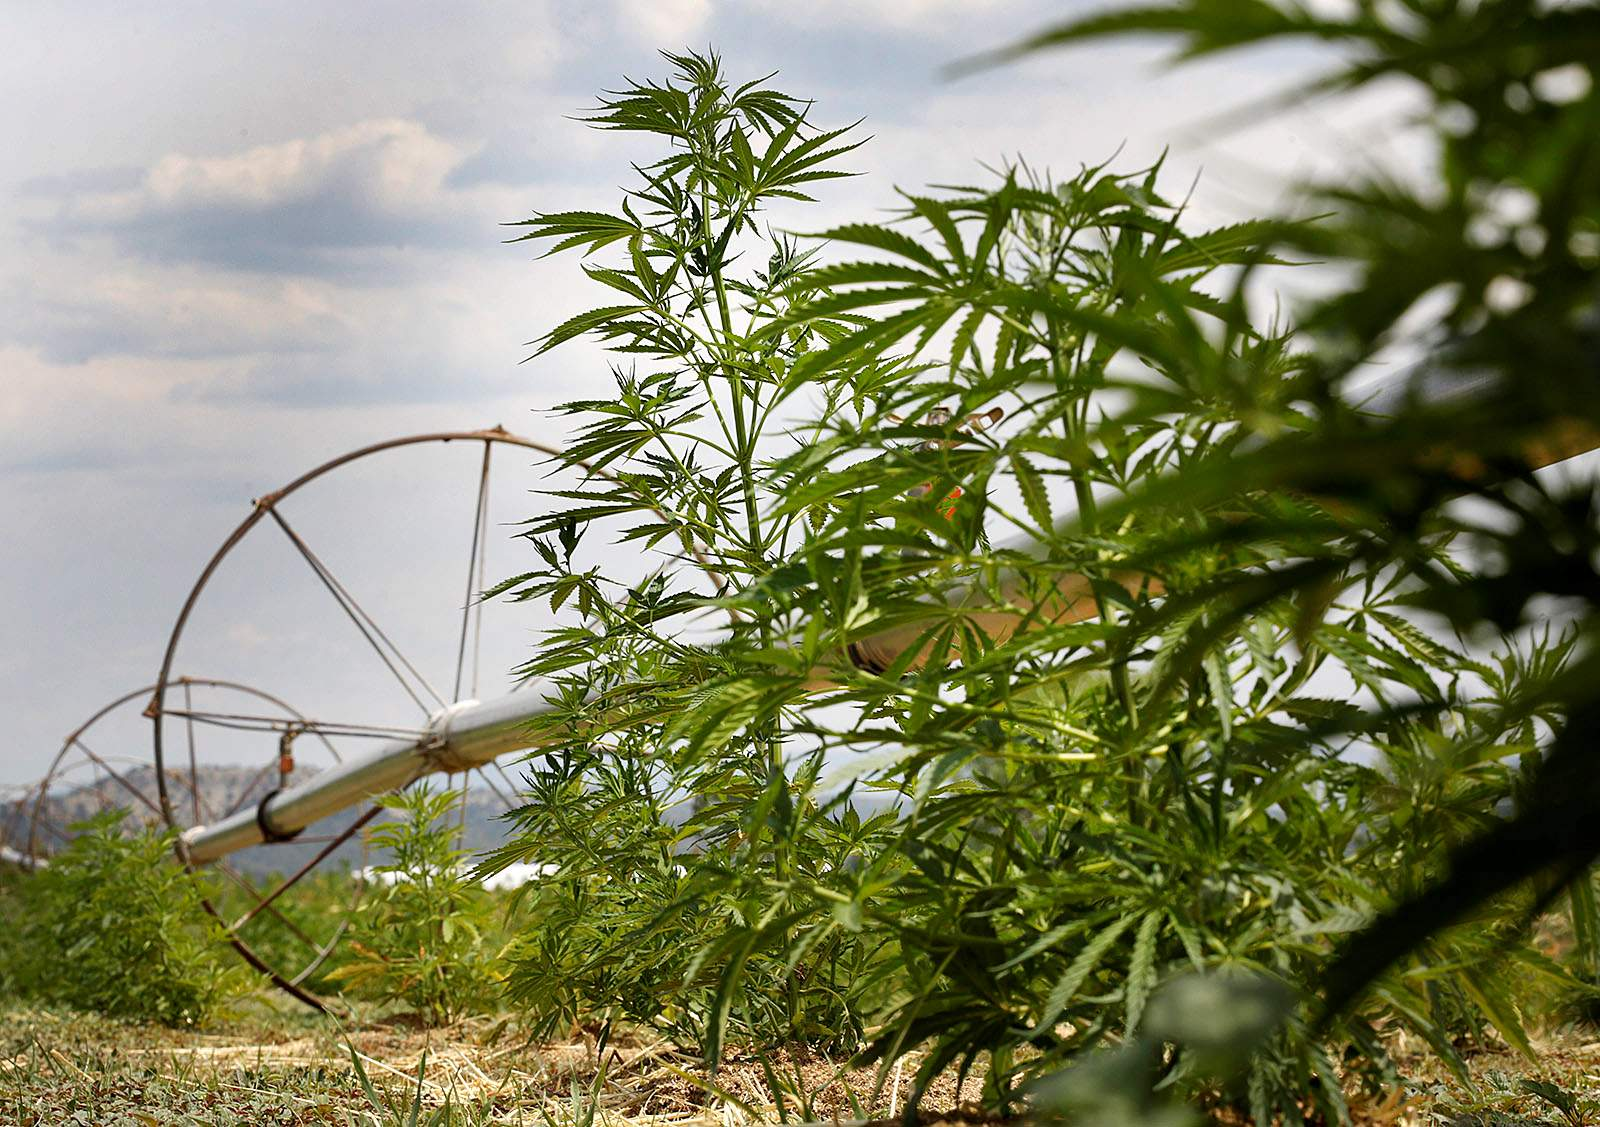 Hemp entrepreneurs face banking challenges - The Journal